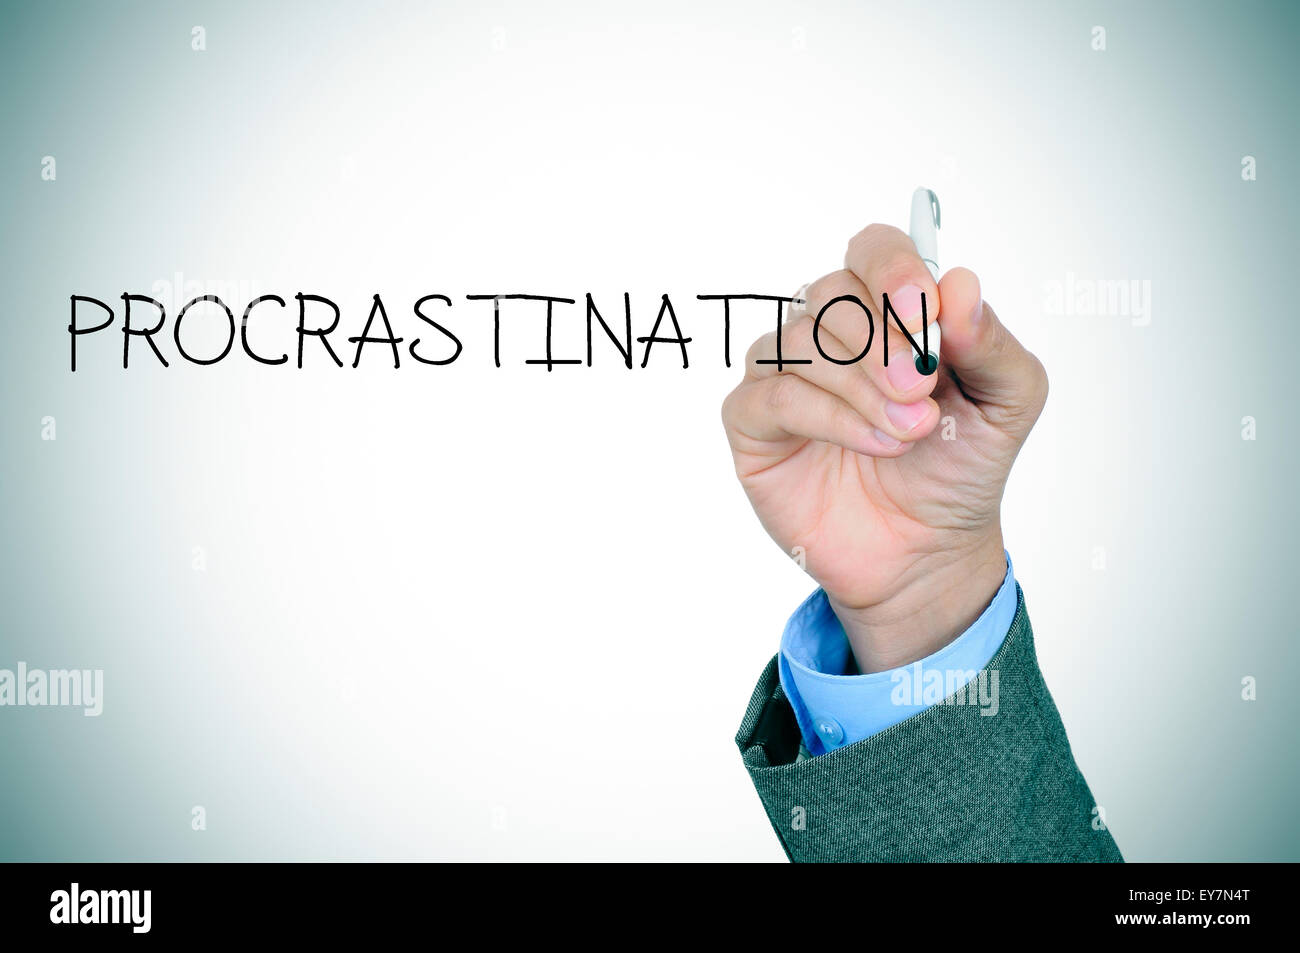 closeup of the hand of a man writing the word procrastination in the foreground - Stock Image